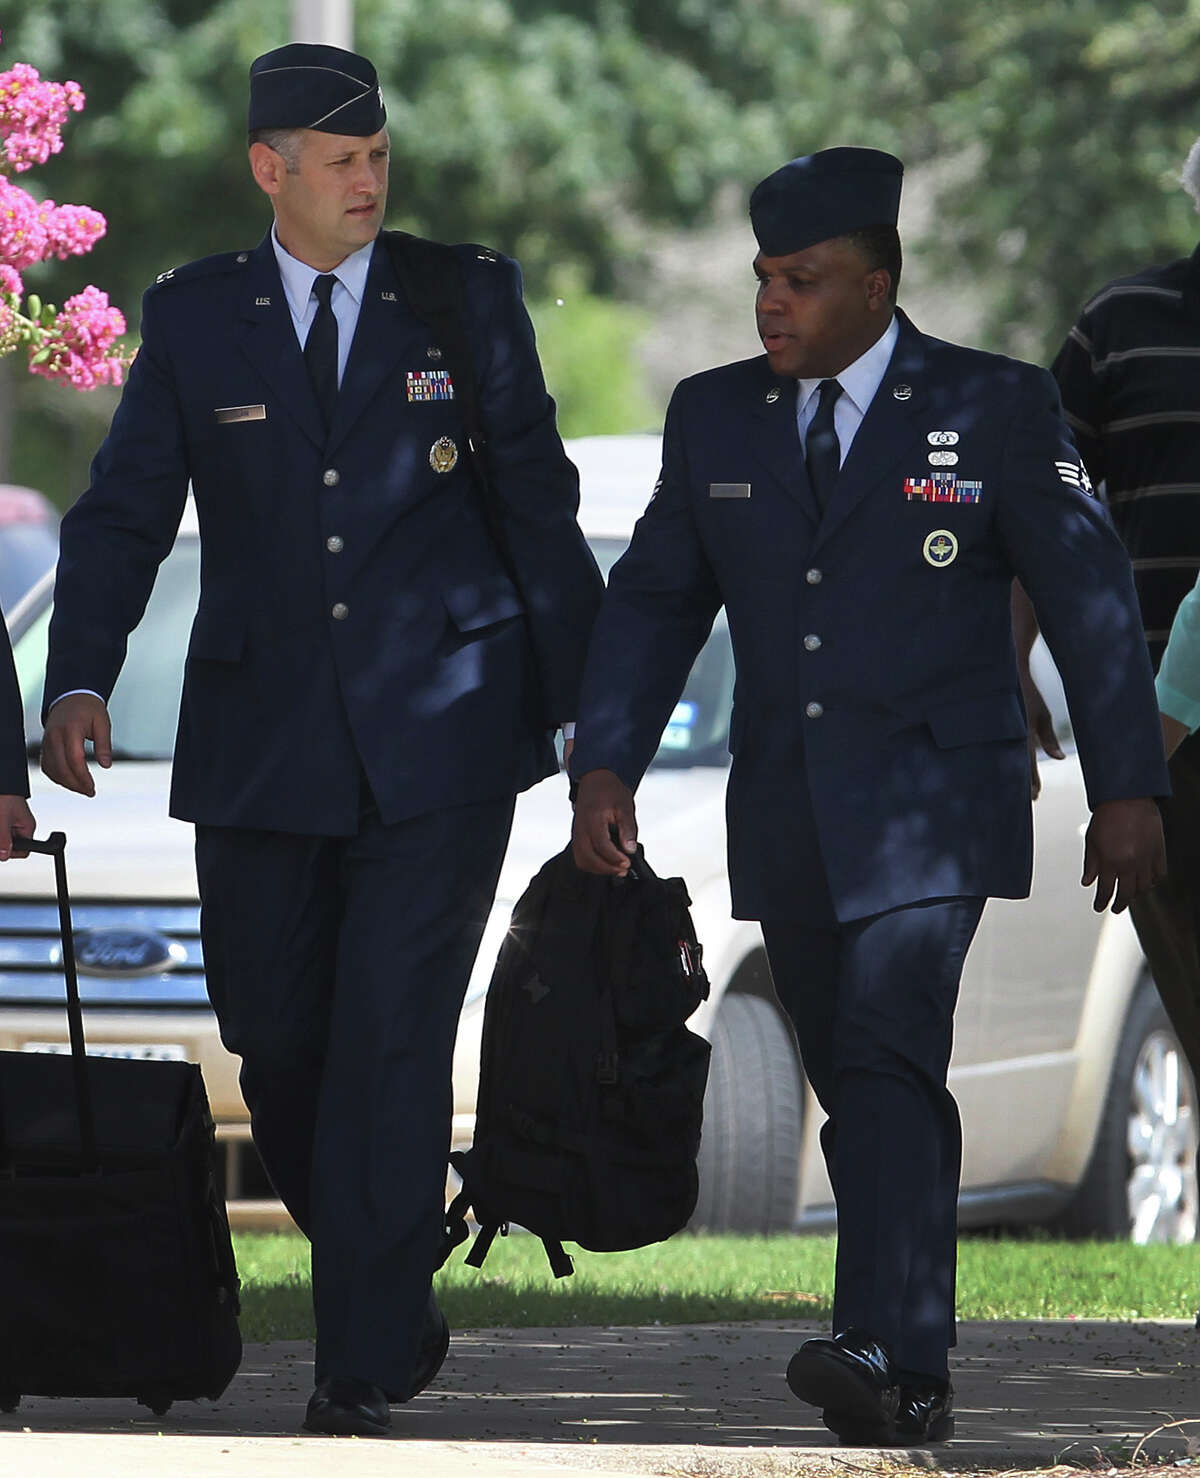 Senior Airman Christopher Oliver (right) walks Monday June 24, 2013 at Joint Base San Antonio-Lackland. Oliver is facing a court-martial on charges of aggravated sexual assault and abusive sexual conduct of one basic training recruit and other charges.